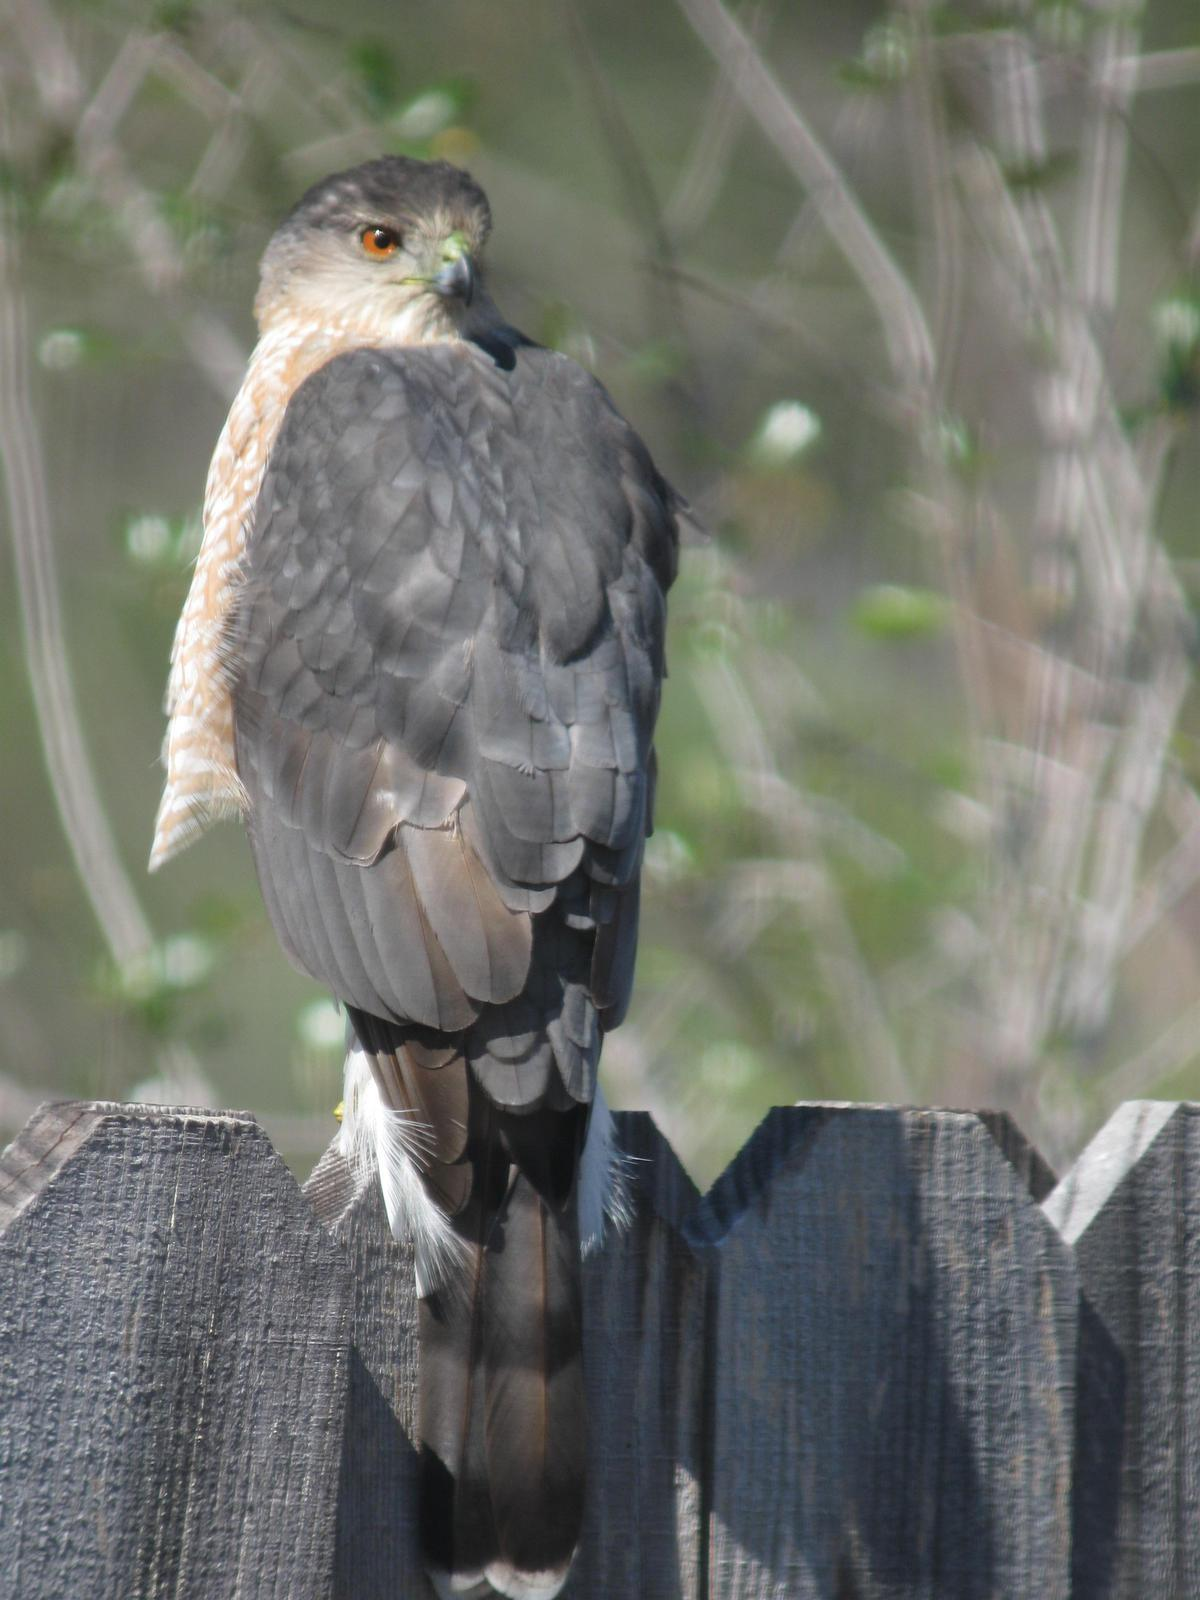 Cooper's Hawk Photo by Melinda Calabrese